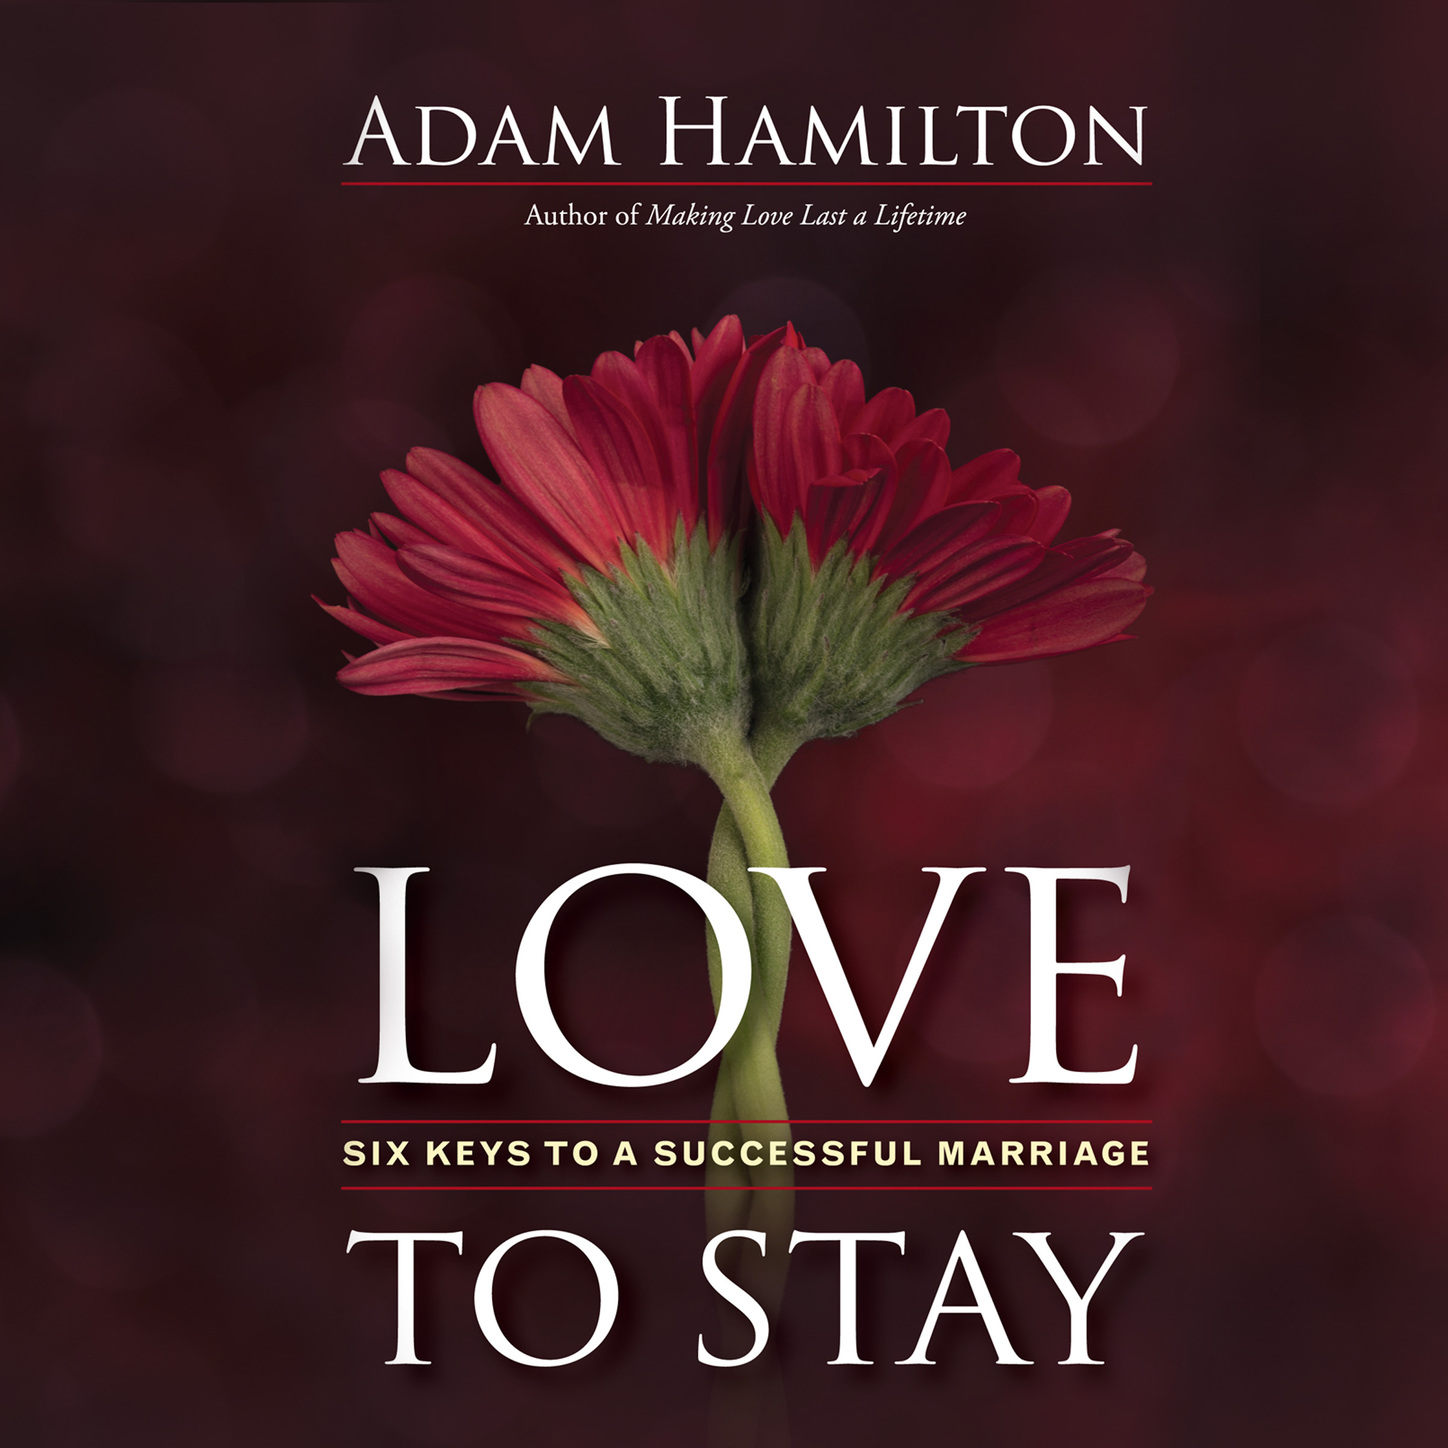 Adam Hamilton Love to Stay - Six Keys to a Successful Marriage (Unabridged) oom 102 1 oxygen battery applied to drager mustang hamilton newport chenwei